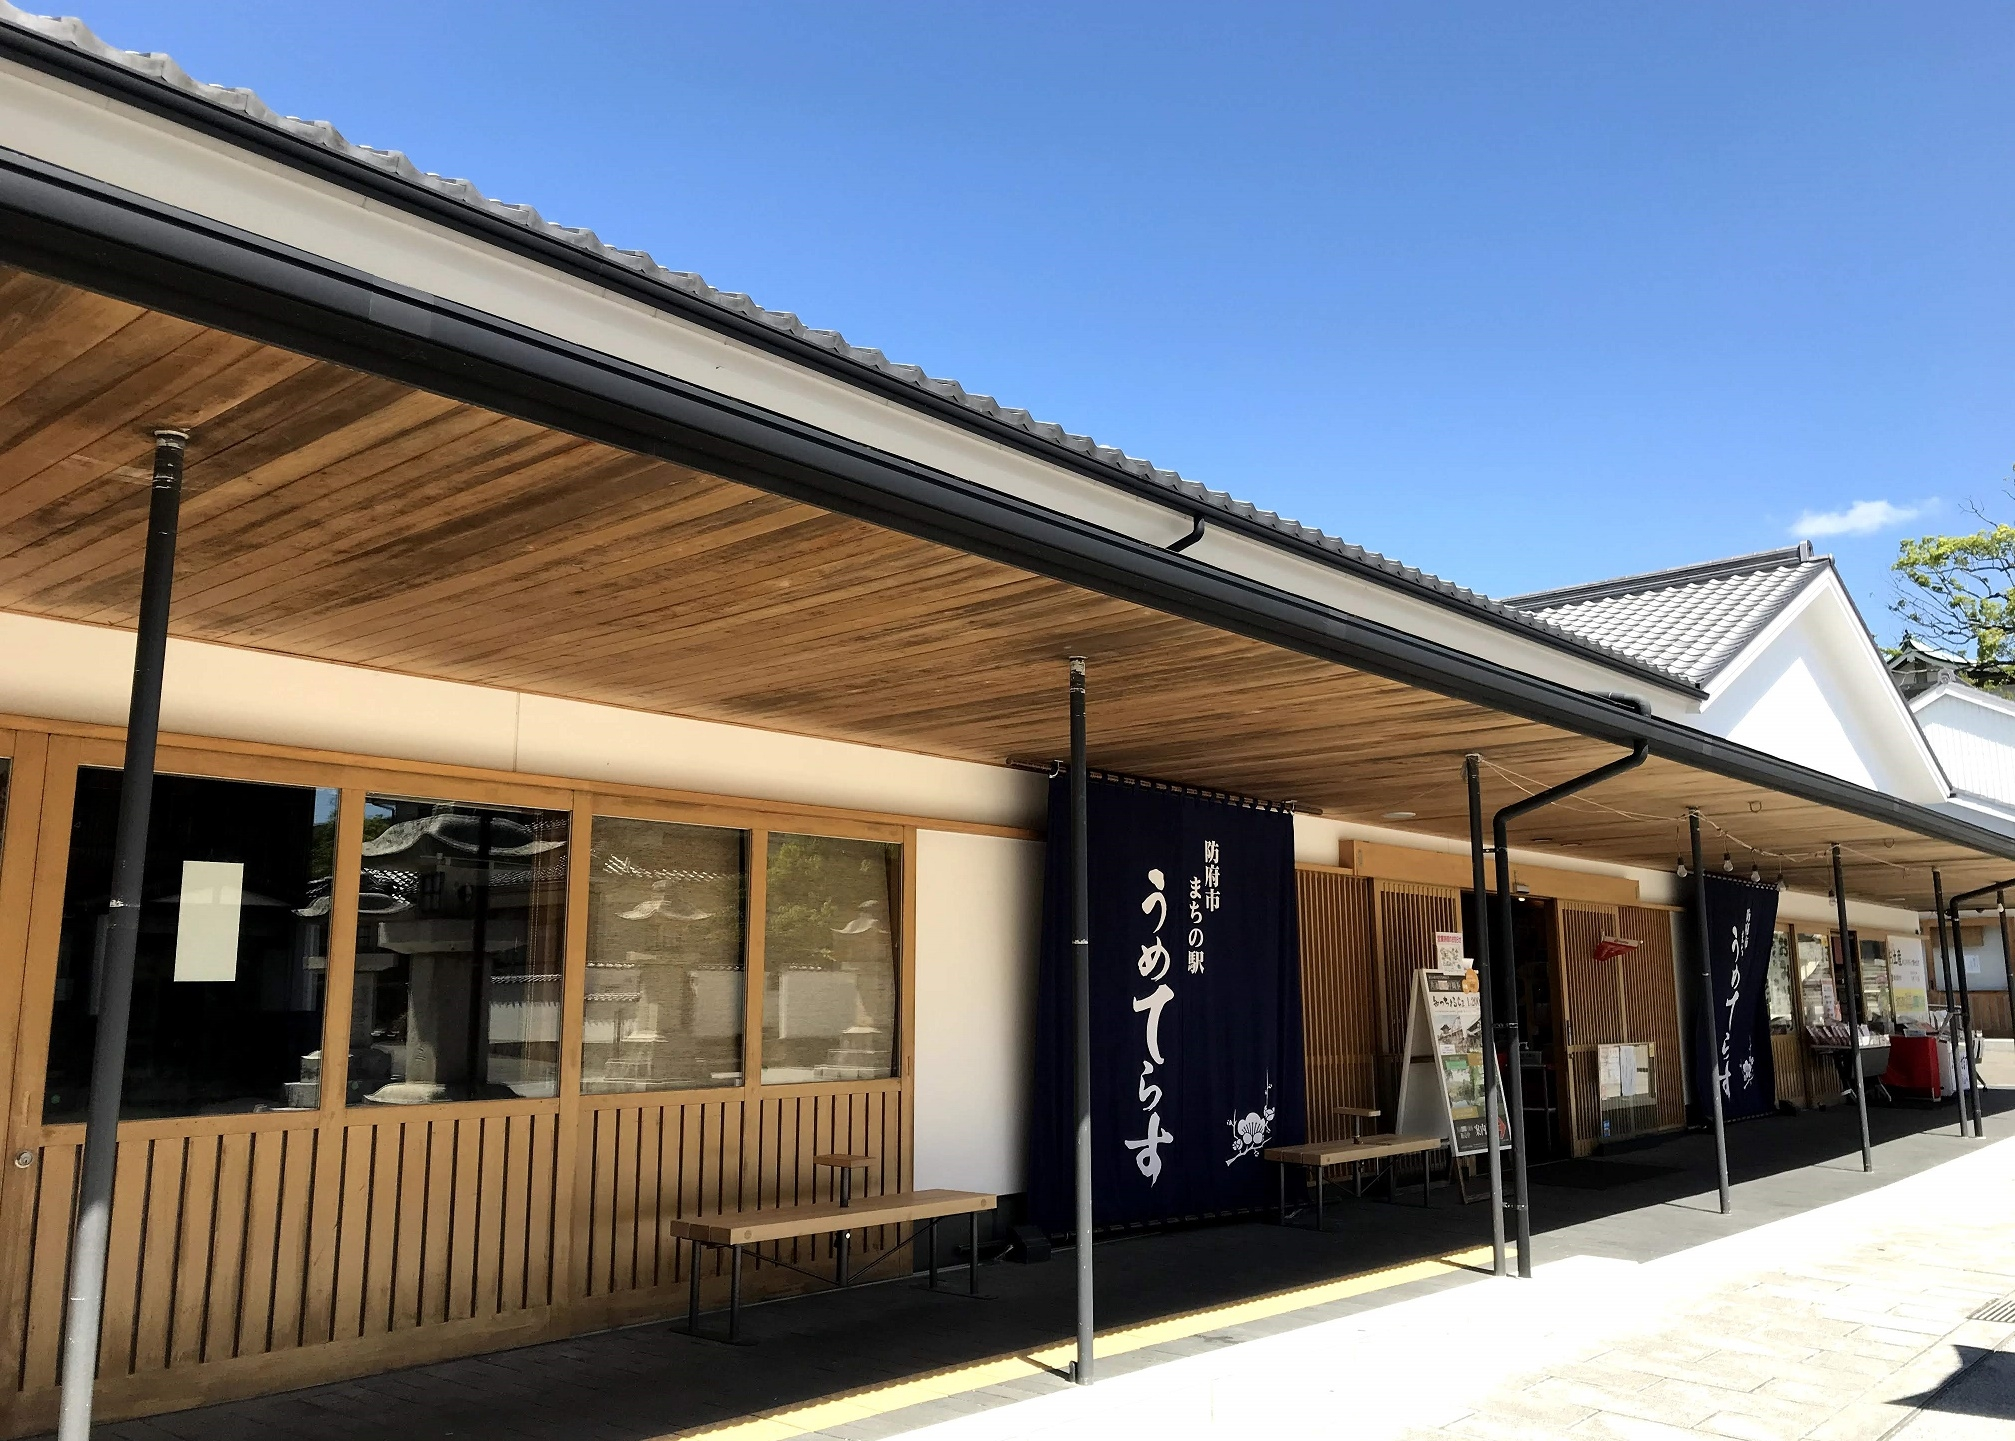 1. Hofu City station Ume-terrace